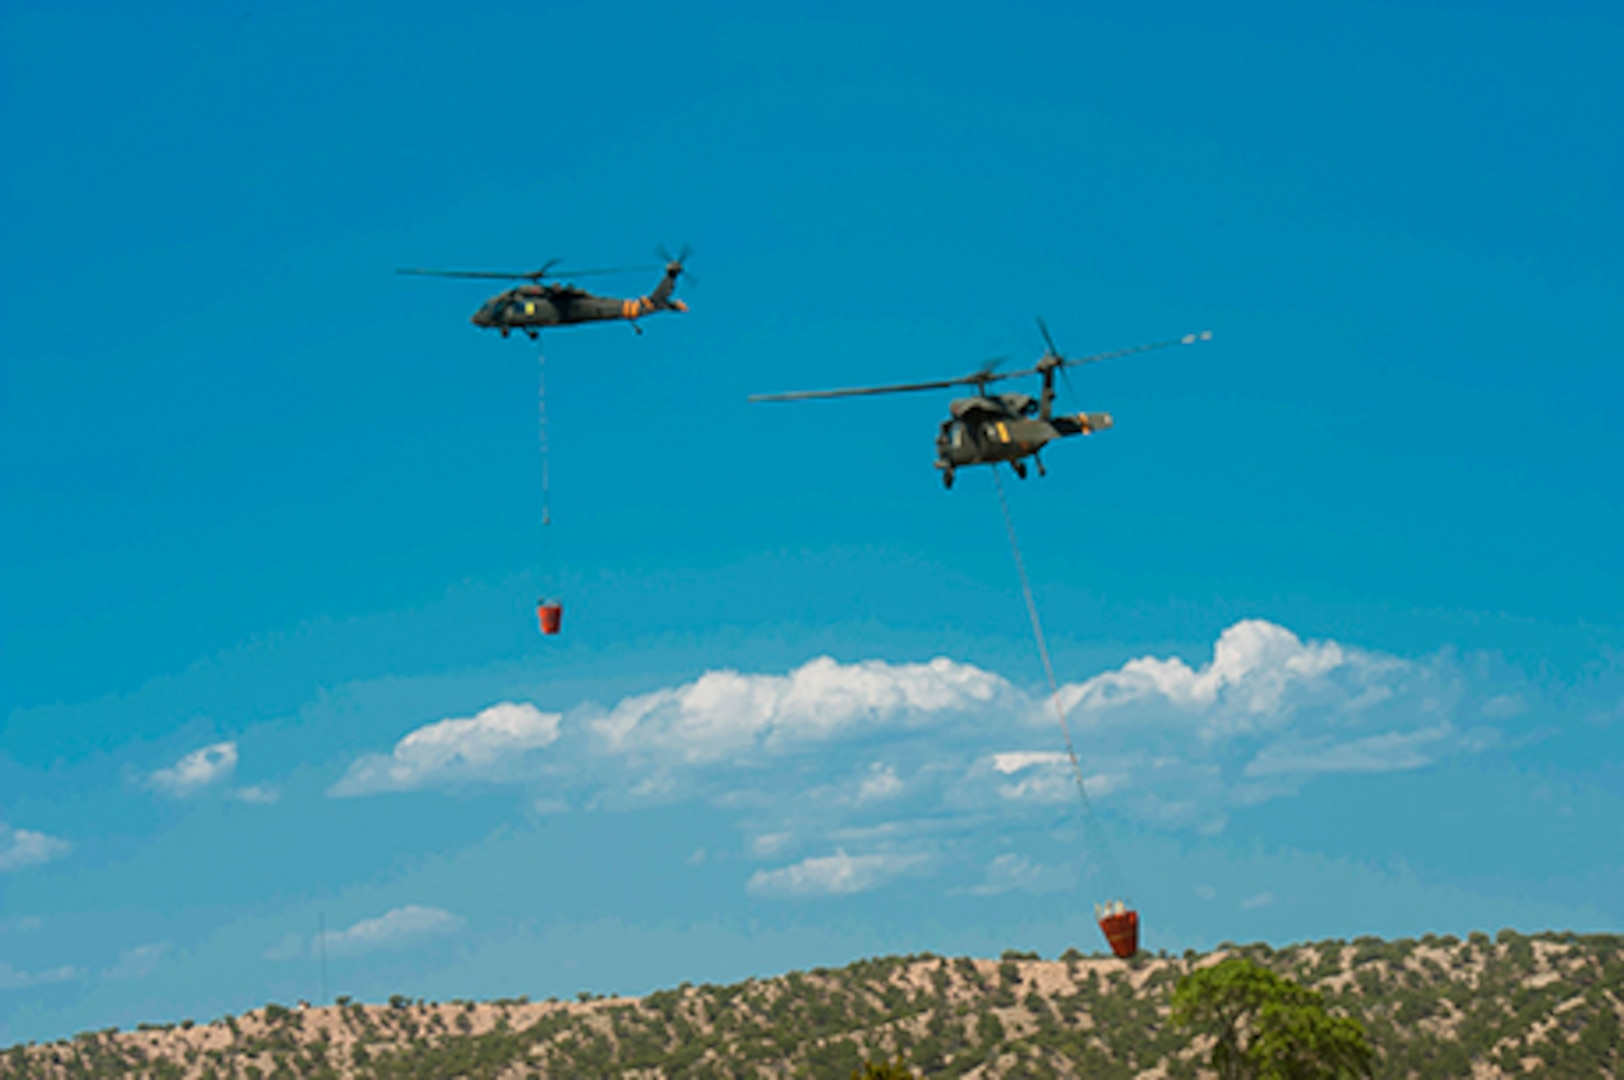 Two UH-60 Black Hawk helicopter crews with aircraft, equipped with aerial water buckets, from the Chief Warrant Officer 5 David R. Carter Army Aviation Support Facility based at Buckley Air Force Base, Aurora, Colorado, depart the Spring Fire helibase, in Fort Garland, Colo., to support fire suppression efforts July 3, 2018. The team arrived and began operations July 2.  The CONG has supported the Spring Fire since July 1, 2018, providing capabilities to include: security personnel for traffic control points and roving patrols; two UH-60 Black Hawk helicopter crews and aircraft each equipped with aerial water buckets; geological information system operators; as well as, refueling crews with Heavy Expanded Mobility Tactical refueling trucks and firefighters with HEMTT firefighting vehicles.  The CONG has been providing an aviation search and rescue standby capability in support of the Rocky Mountain Area Coordination Center since July 1. The High-Altitude Army National Guard Aviation Training Site facility in Gypsum, Colorado, is supporting the mission which is rapid response to aviation search and rescue missions, primarily for firefighter safety, in support of multiple wildfire responses throughout Colorado.  On order of the Governor, the standing Joint Task Force - Centennial commands and integrates CONG forces to support civil authorities in assisting Colorado, or supported states, during times of crisis and disaster, to save lives, prevent suffering, and mitigate great property damage.  (U.S. Air National Guard photo by Tech. Sgt. Nicole Manzanares)